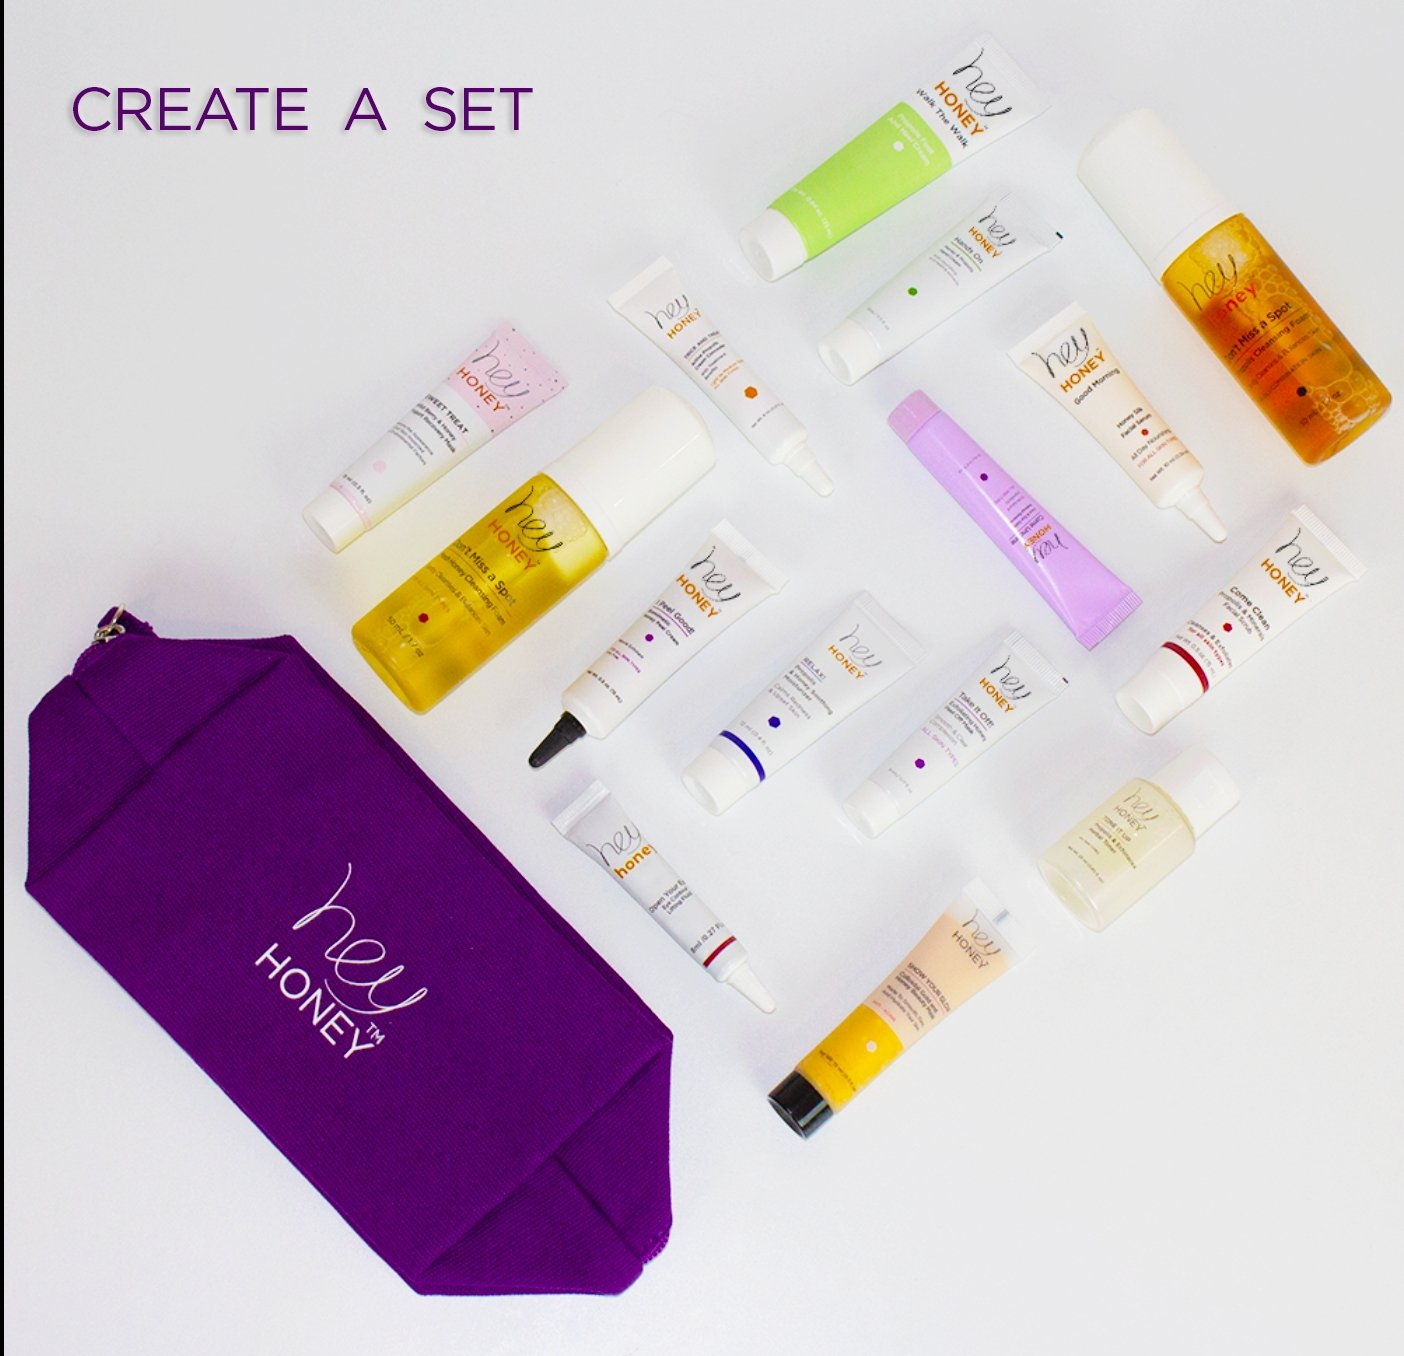 Choose 3 Deluxe Travel Samples and receive a complimentary